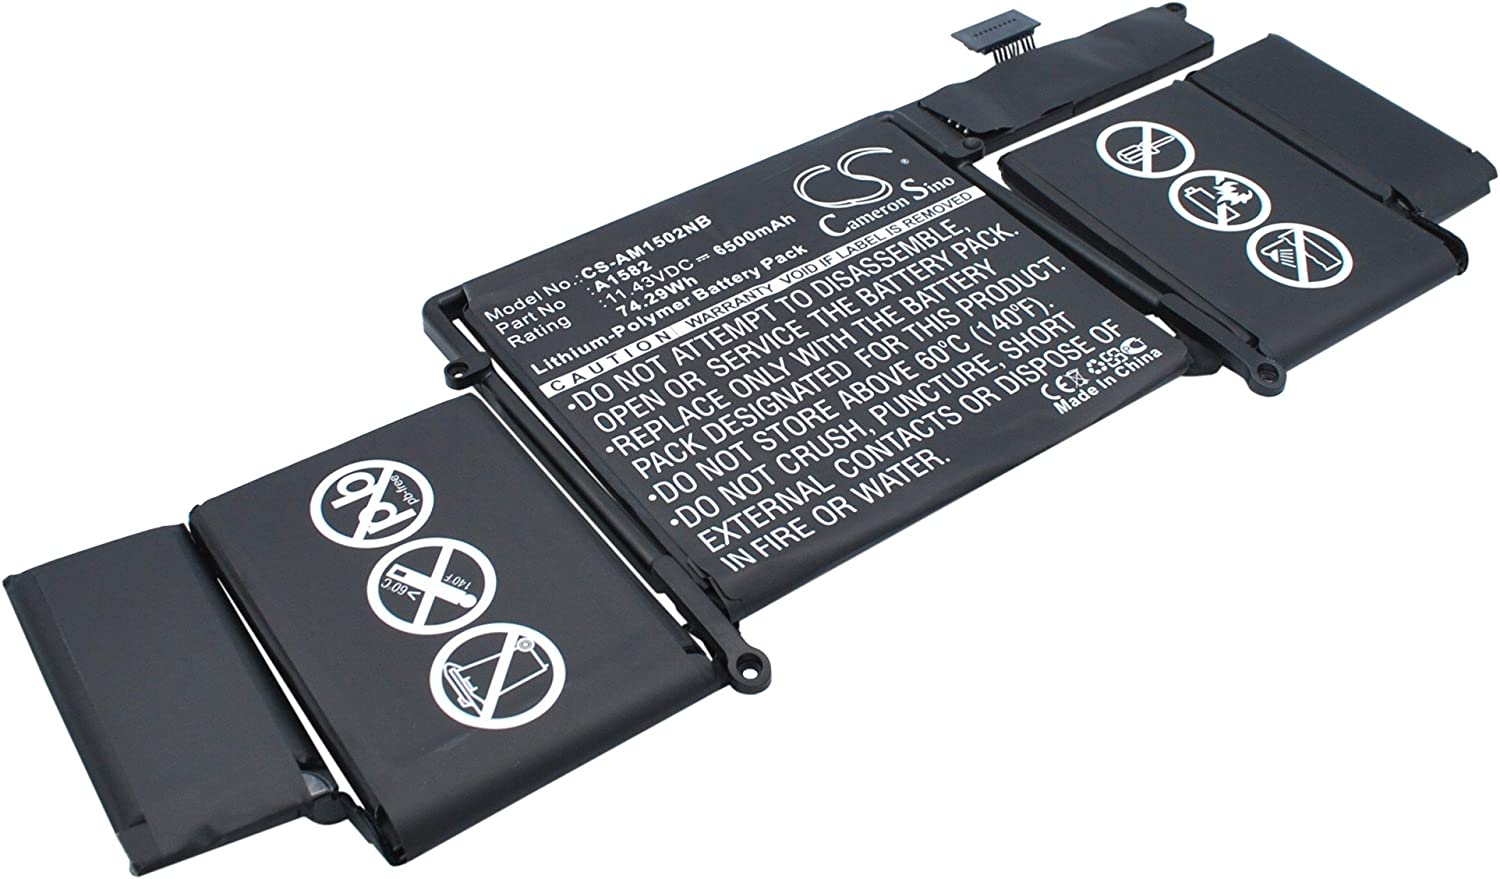 "Rechargeable Battery for Apple MacBook Pro 13"" 2015 Retina, MF839LL/A, MF841LL/A Replacement for Apple A1582"